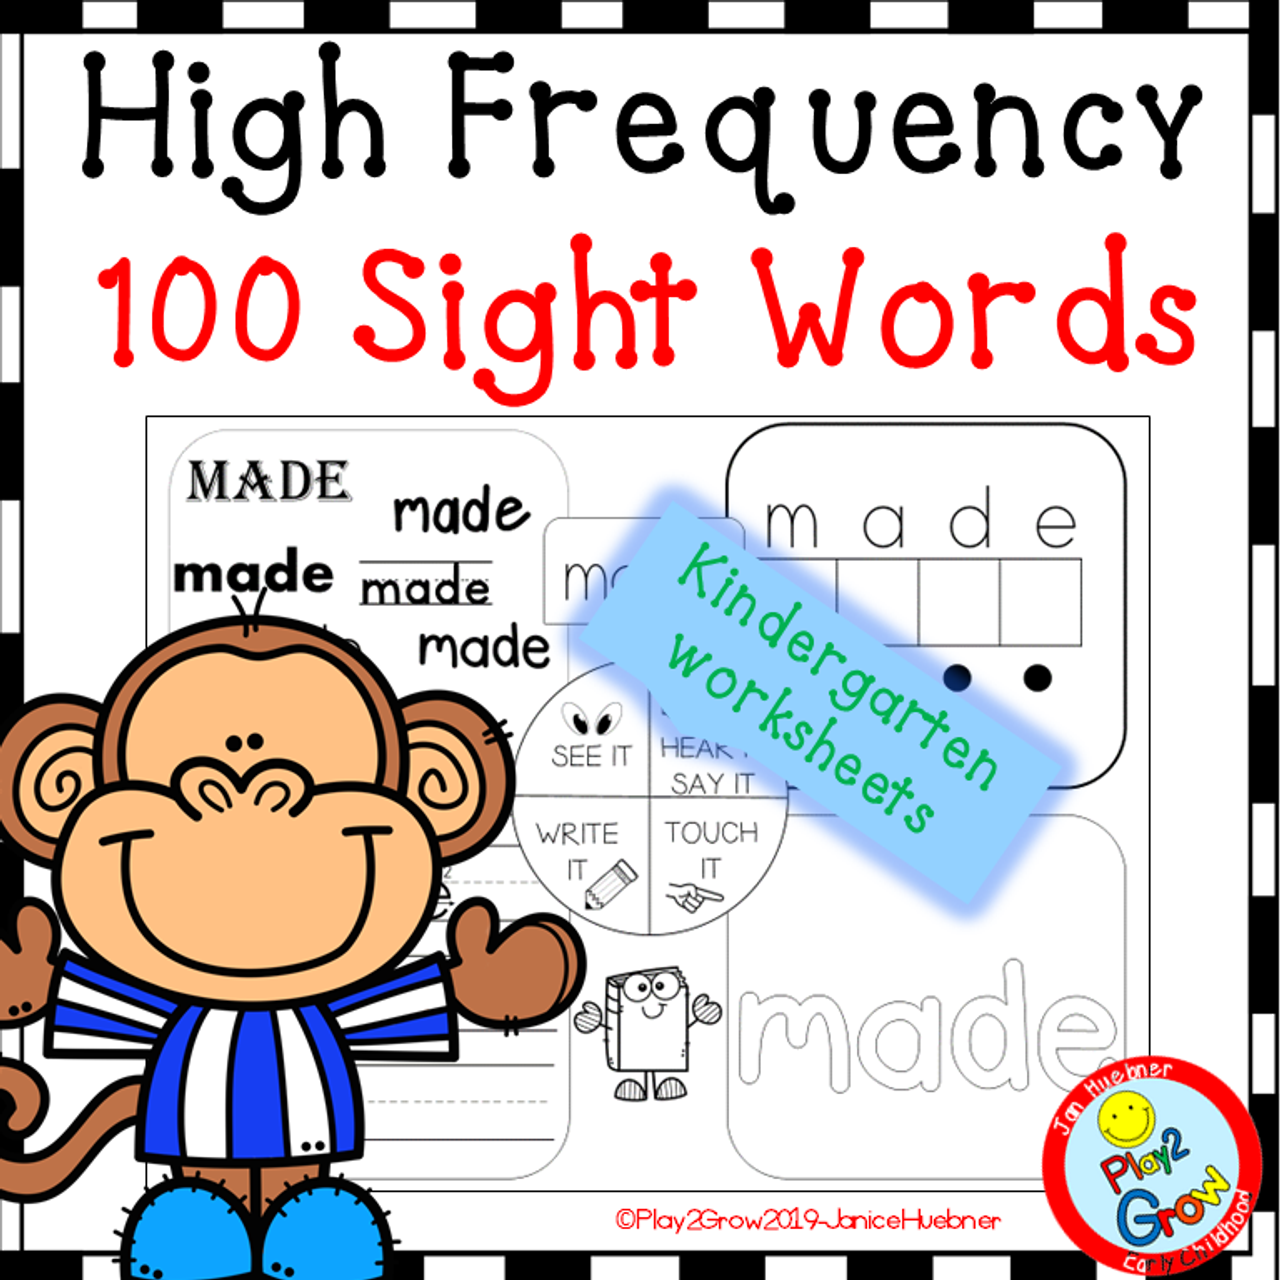 High Frequency Sight Words - 100 words  :)